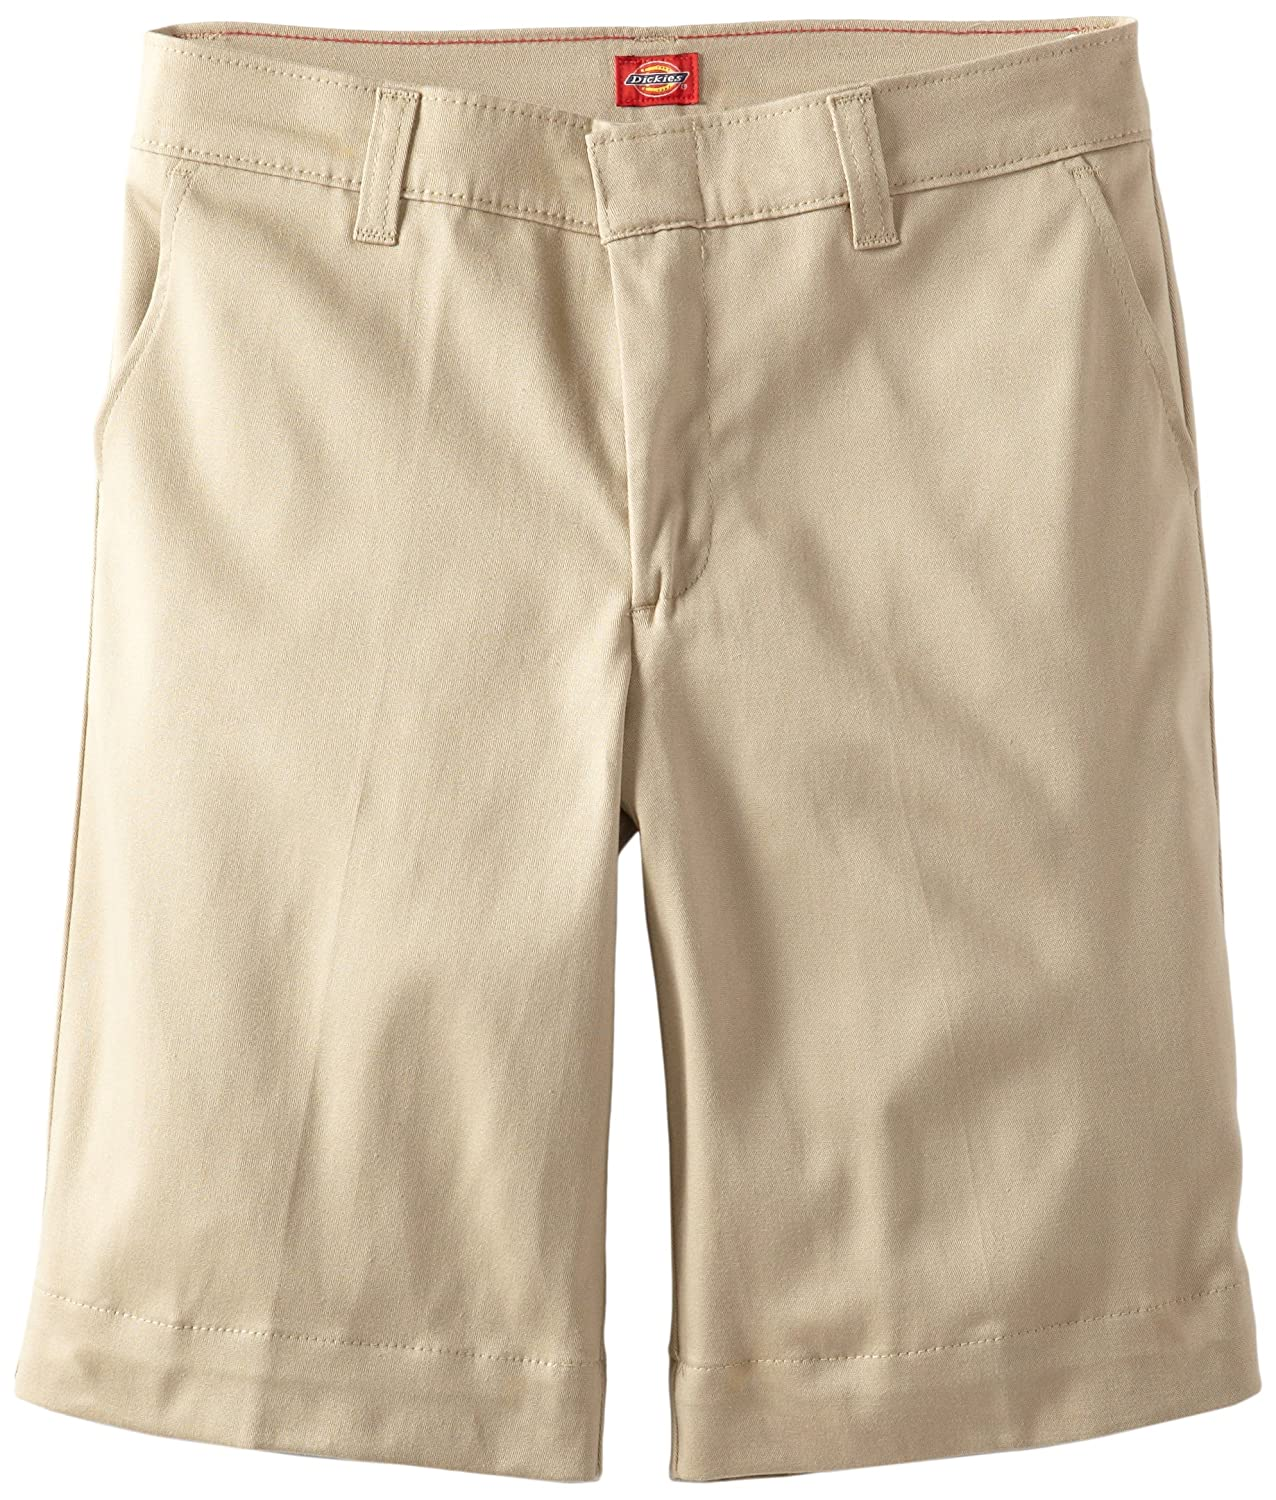 c38ab4c171b5 Dickies Big Girls 'Plus Stretch Bermuda Short, Desert Sand, 12.5 ...